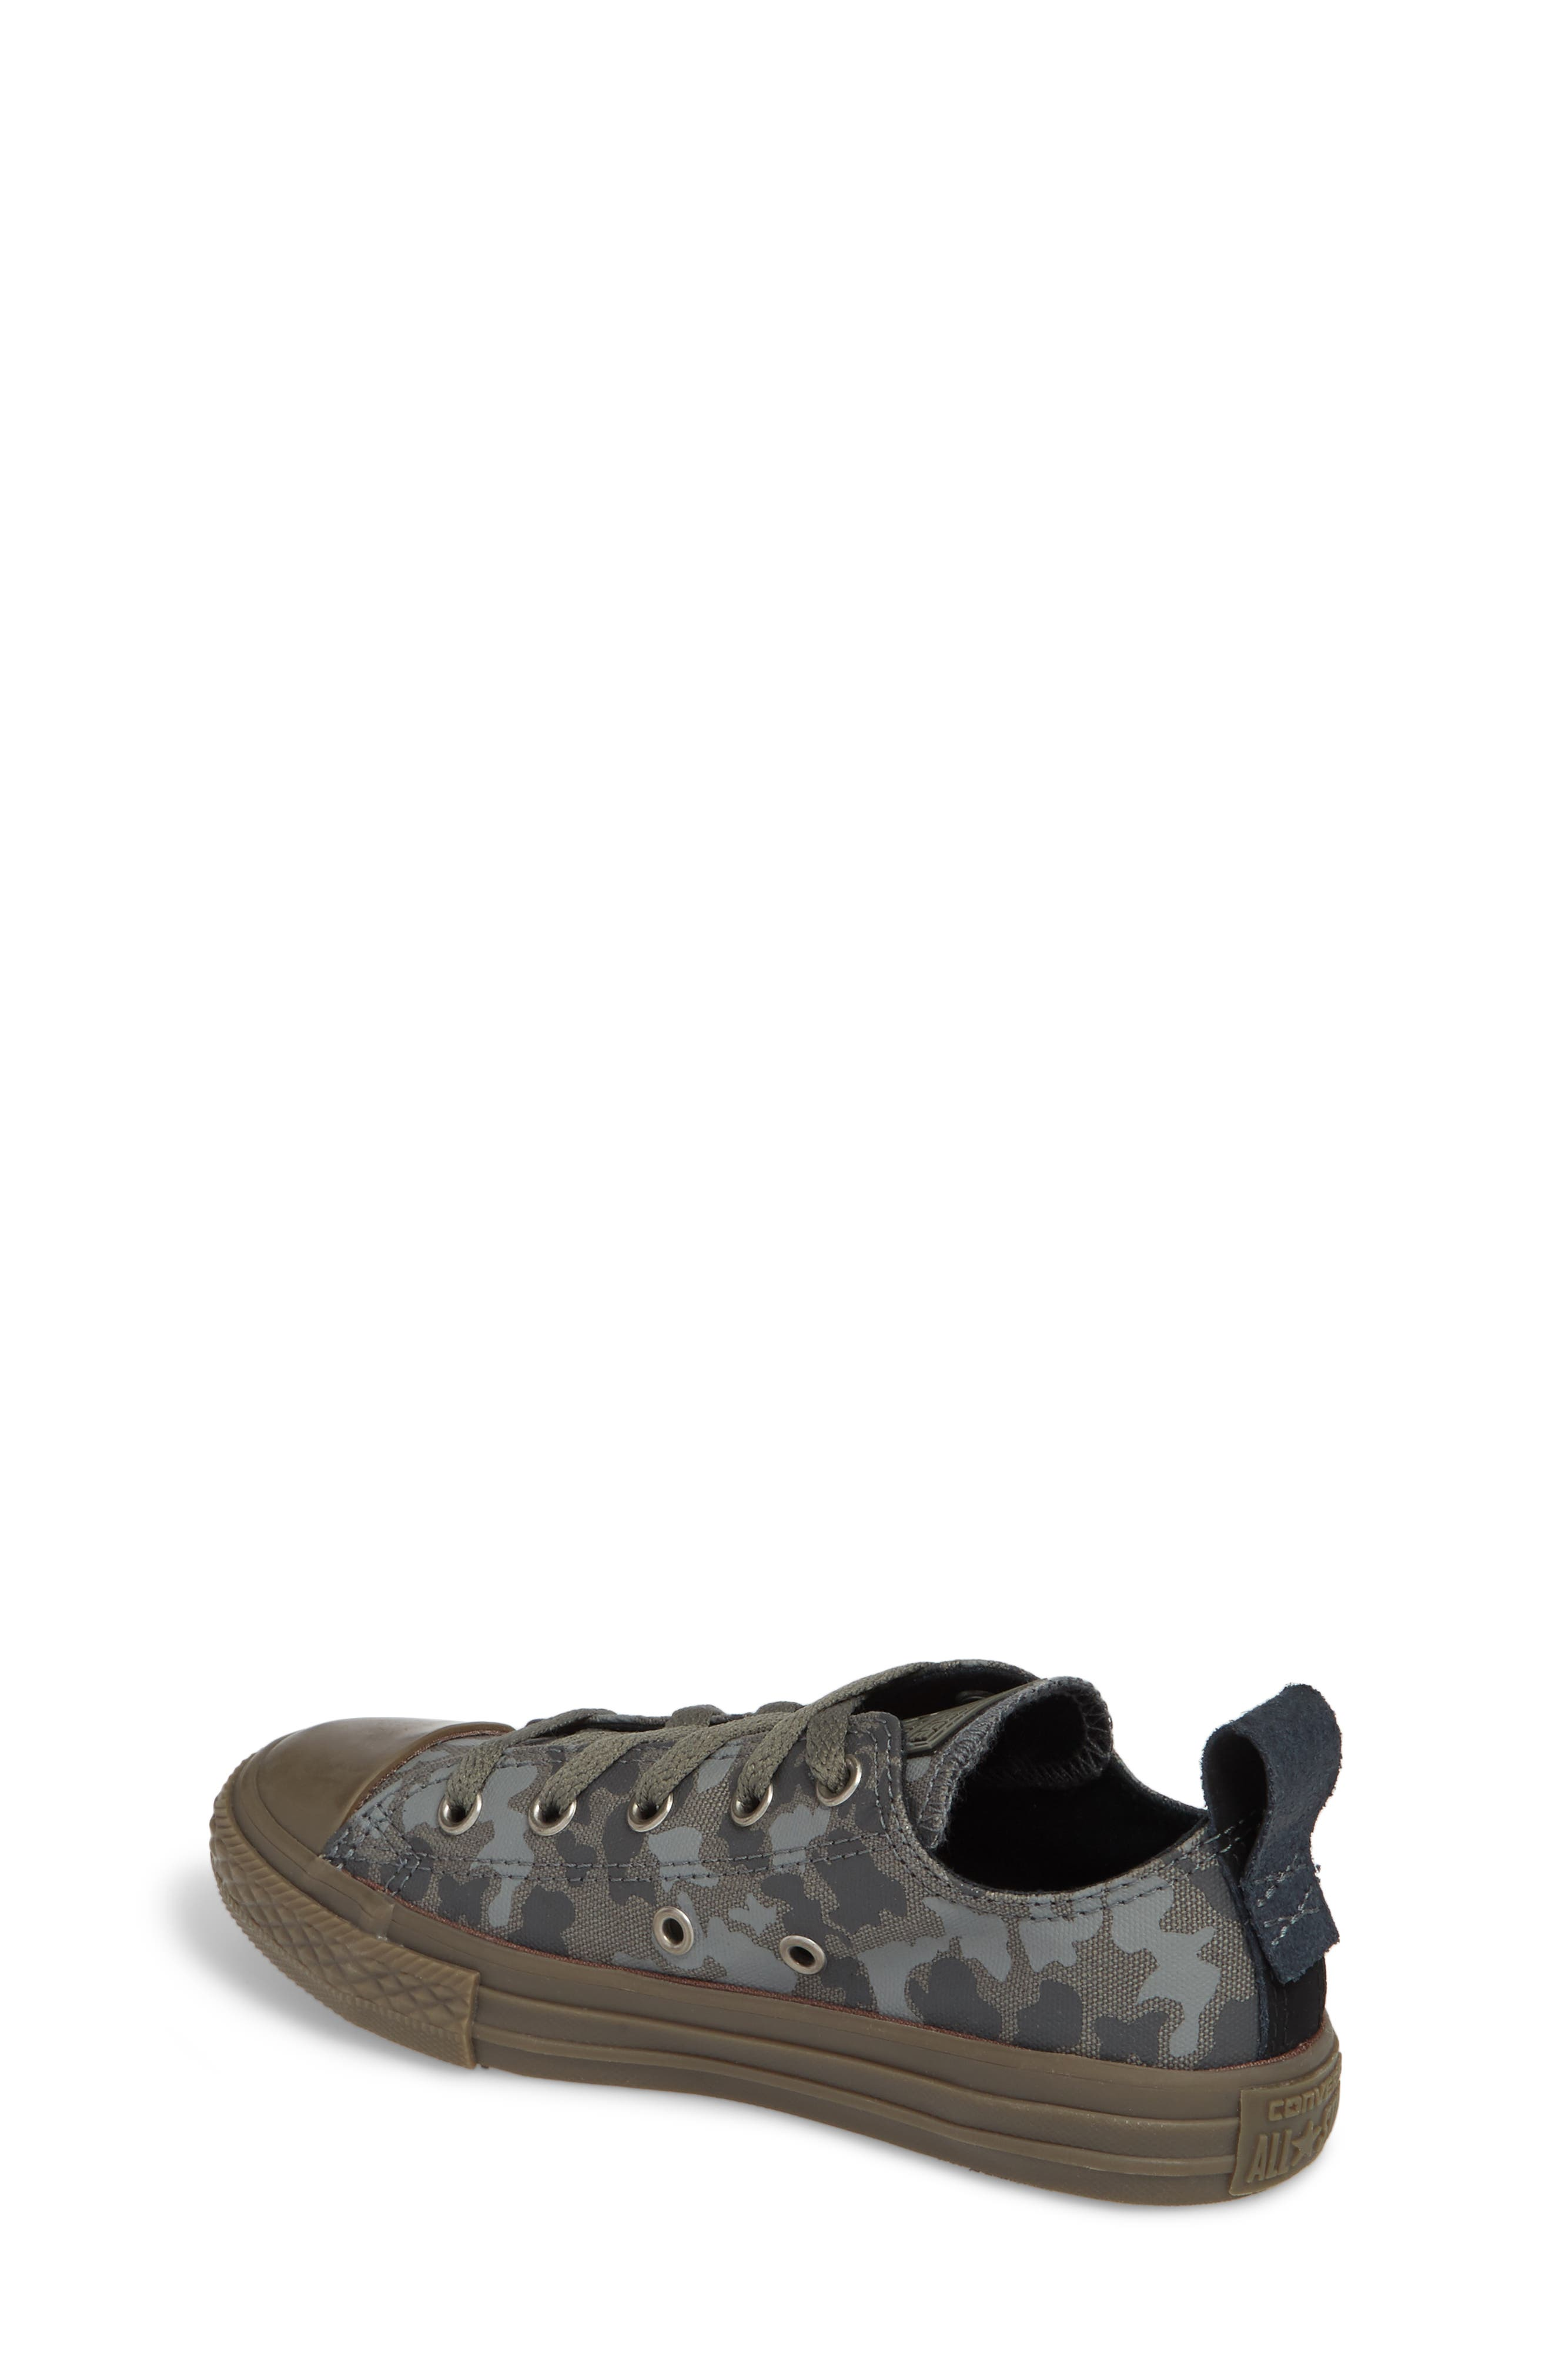 Chuck Taylor<sup>®</sup> All Star<sup>®</sup> Camo Ox Low Top Sneaker,                             Alternate thumbnail 2, color,                             Mason